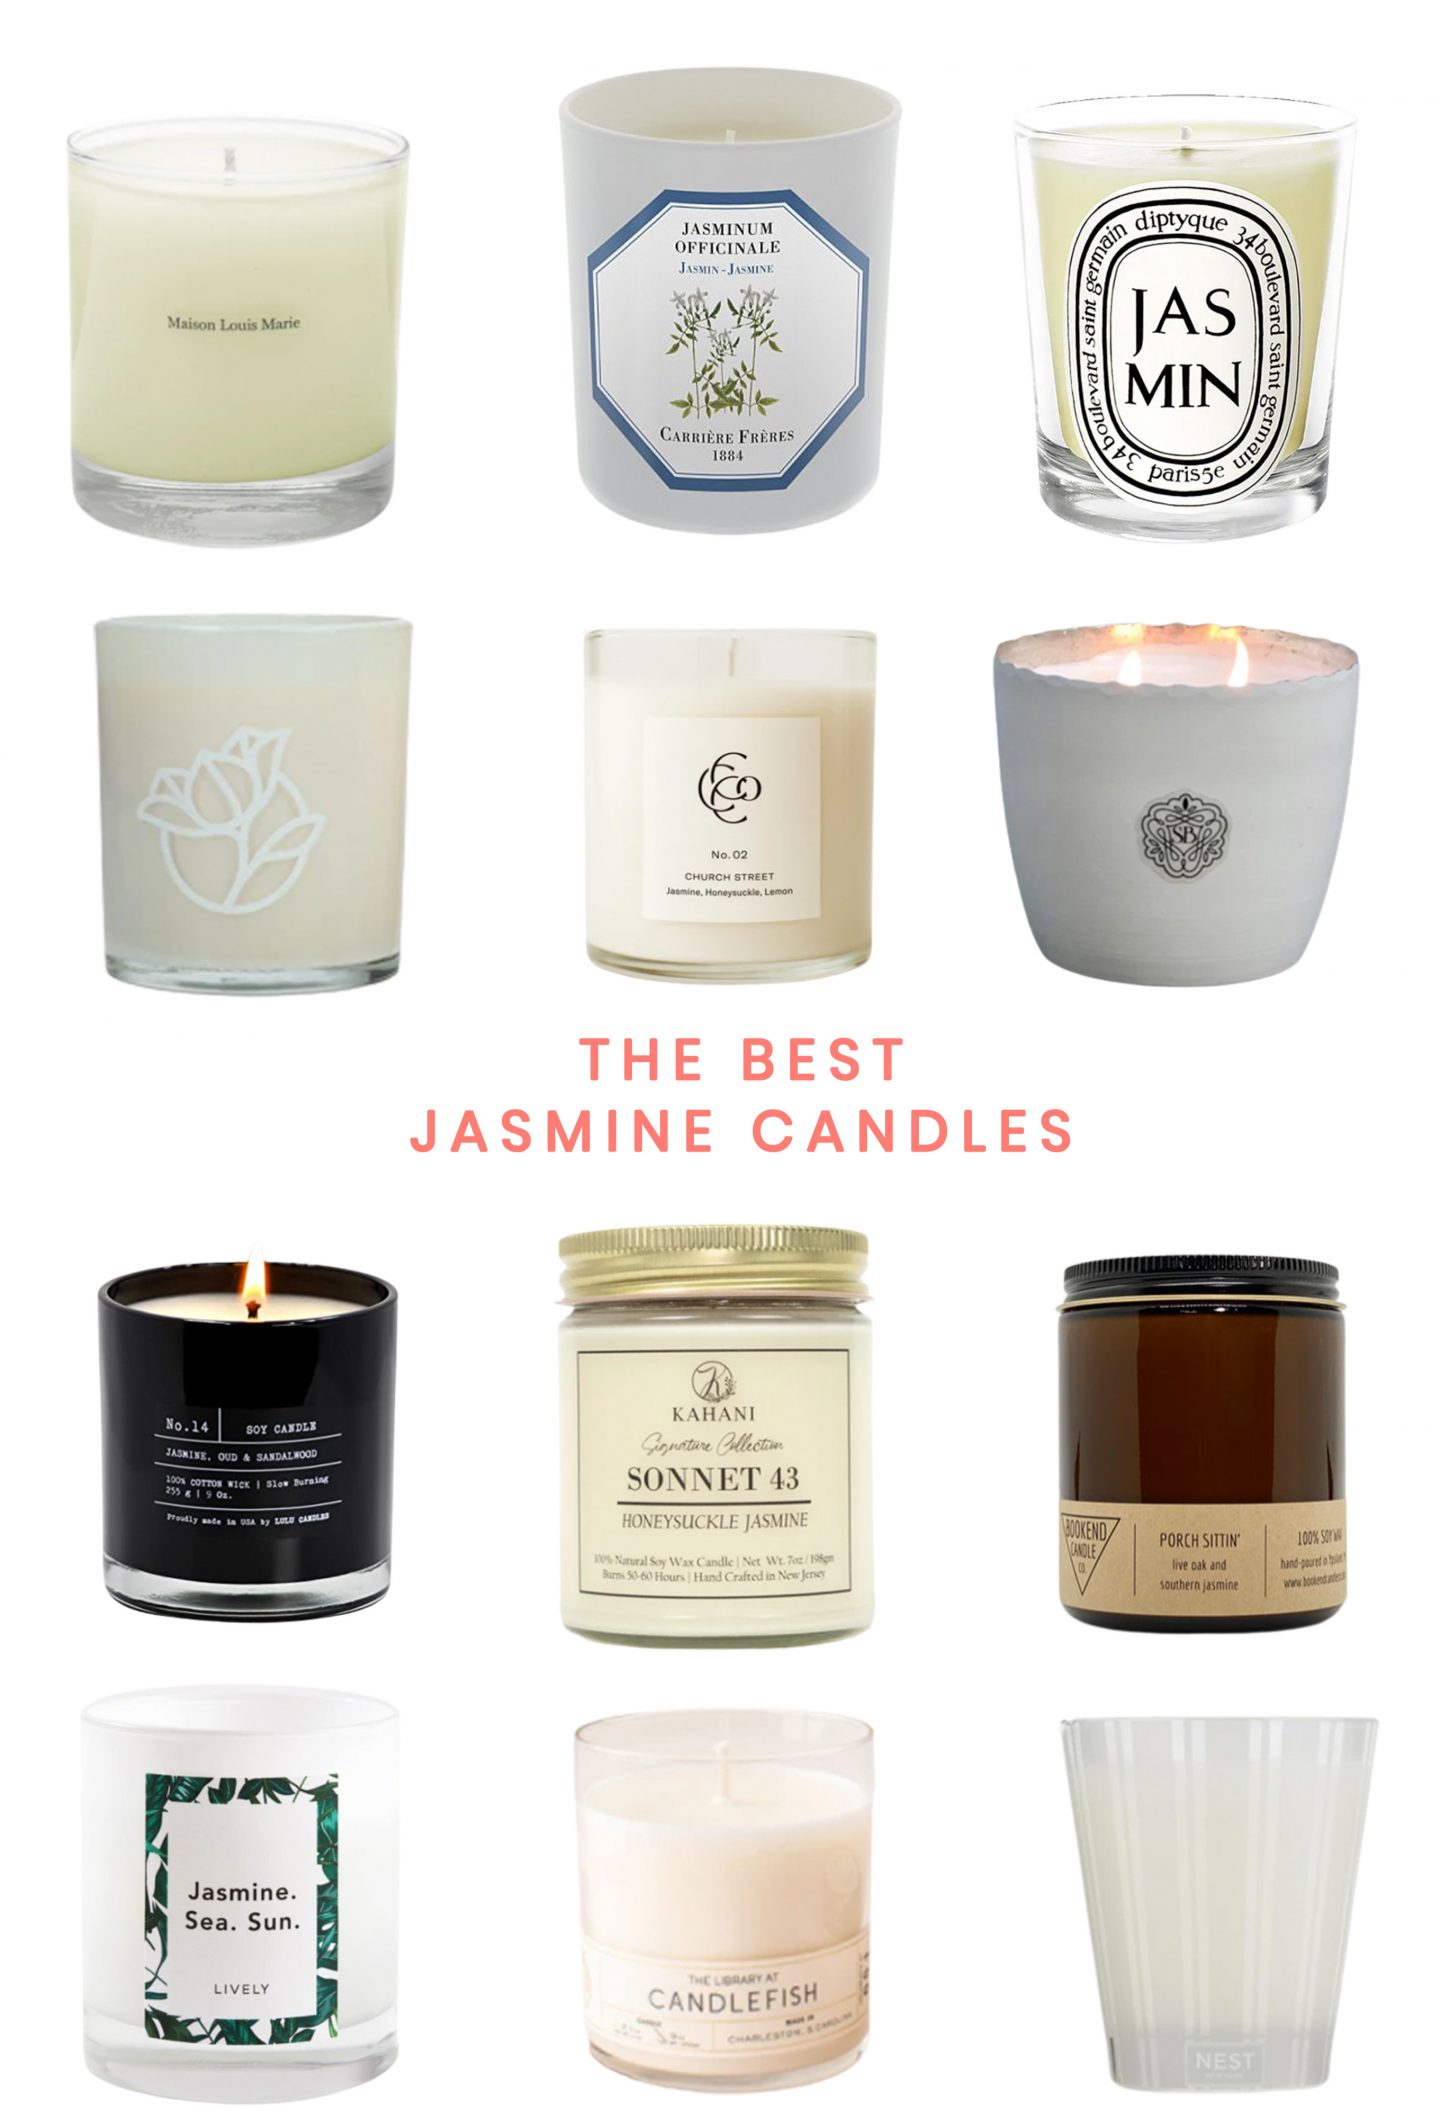 The Best Jasmine Scented Candles